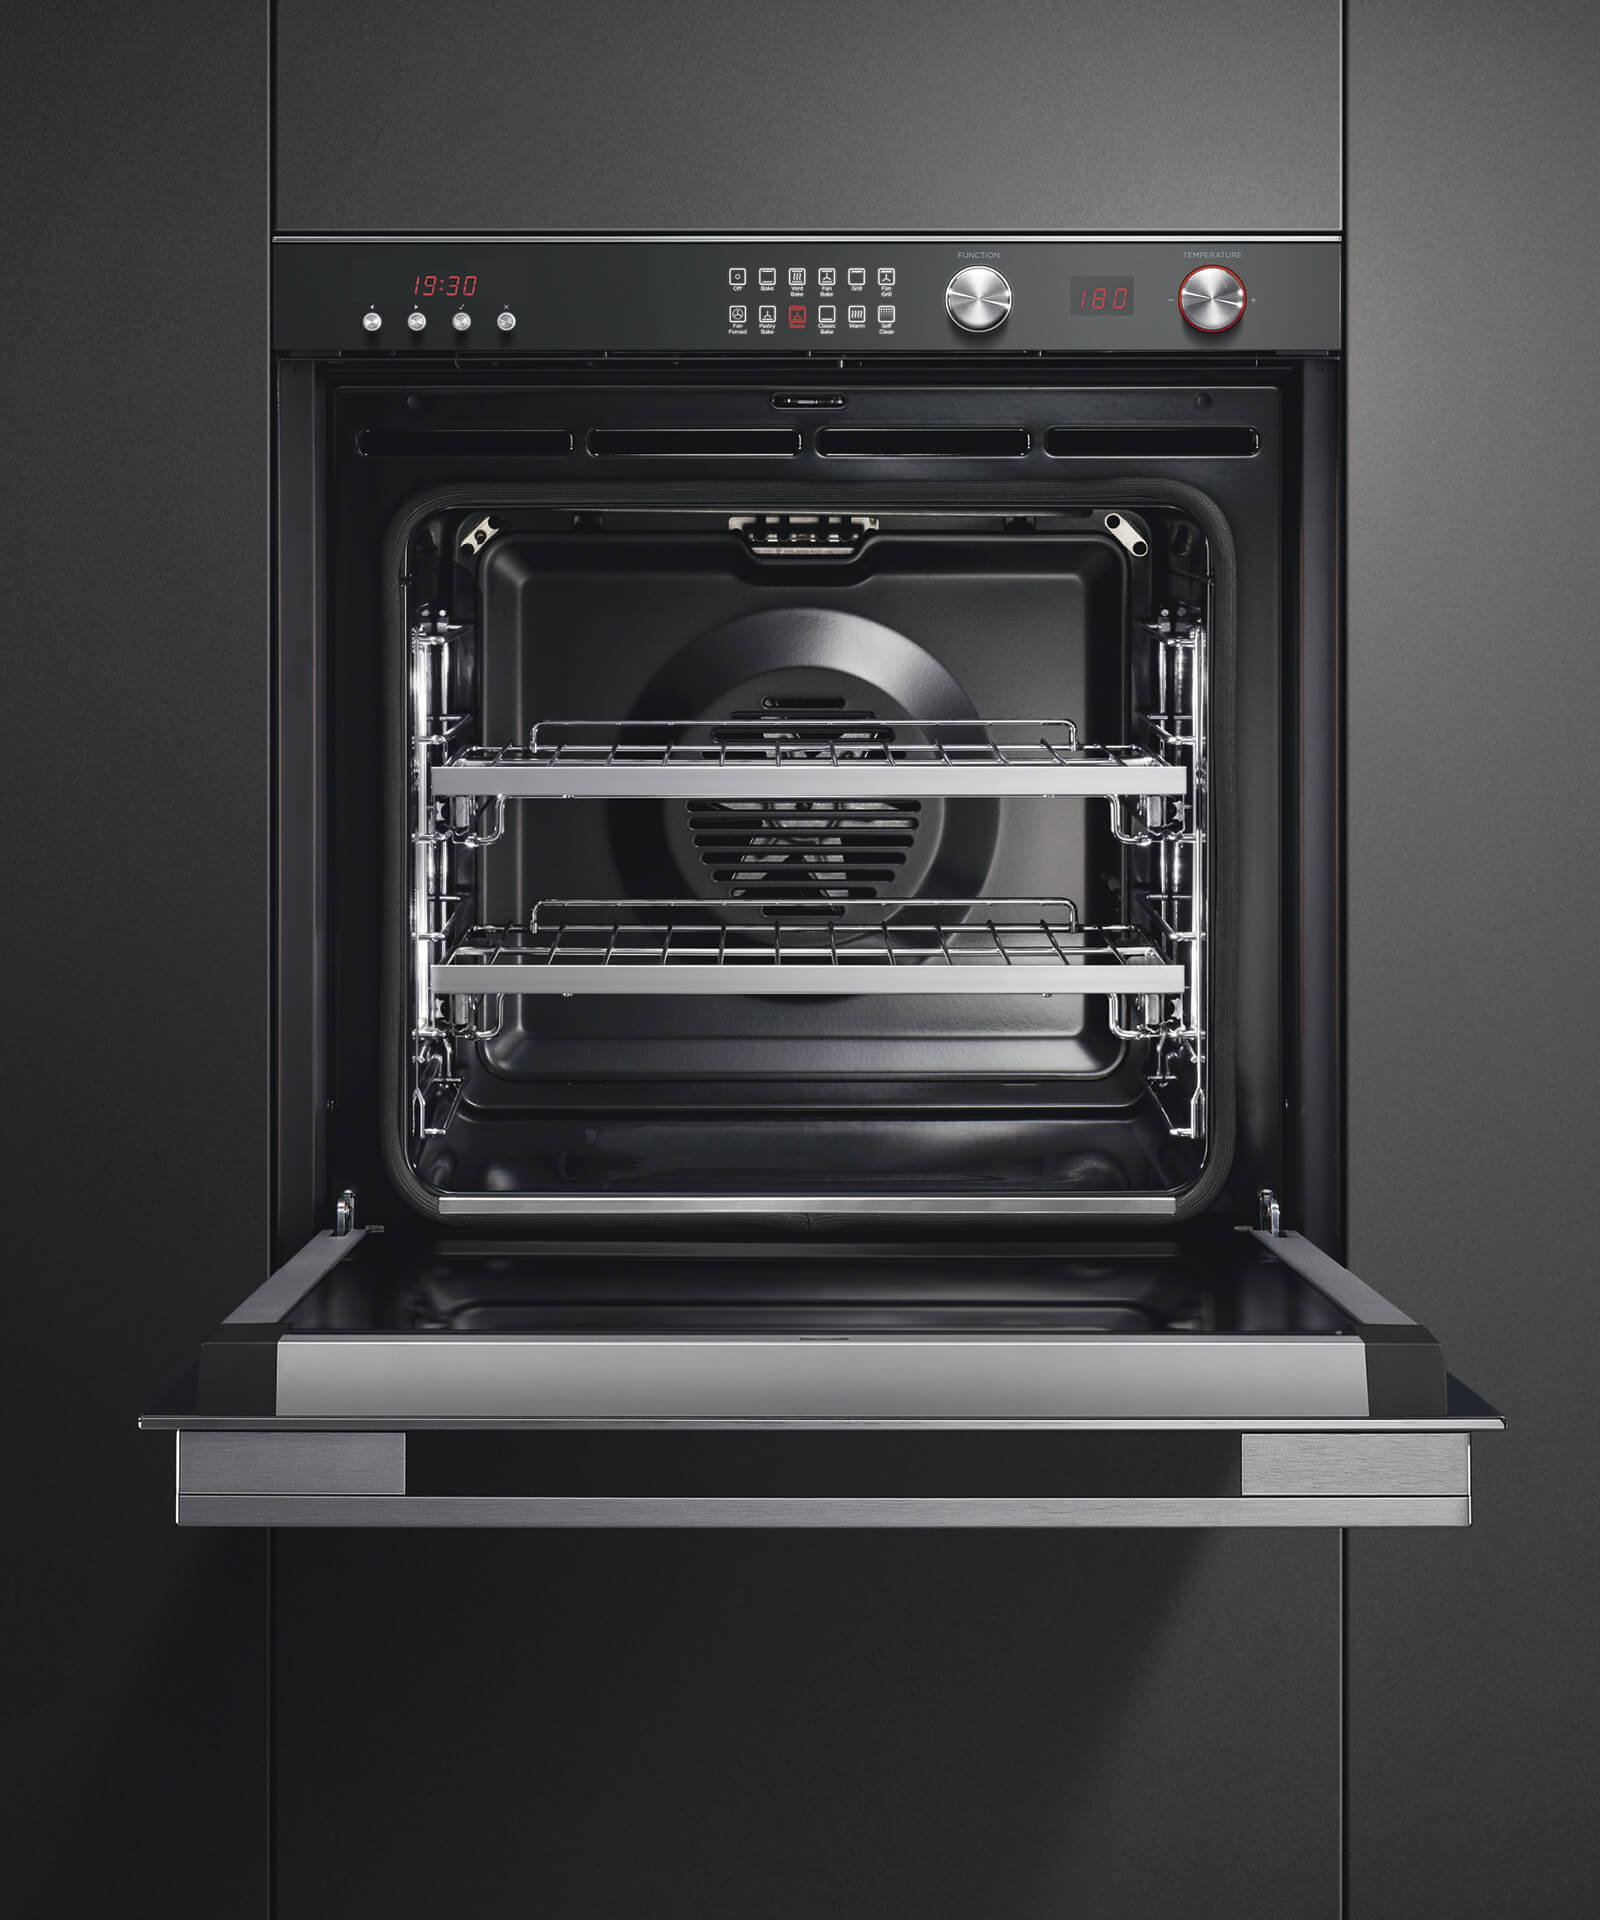 fisher and paykel oven instruction manuals